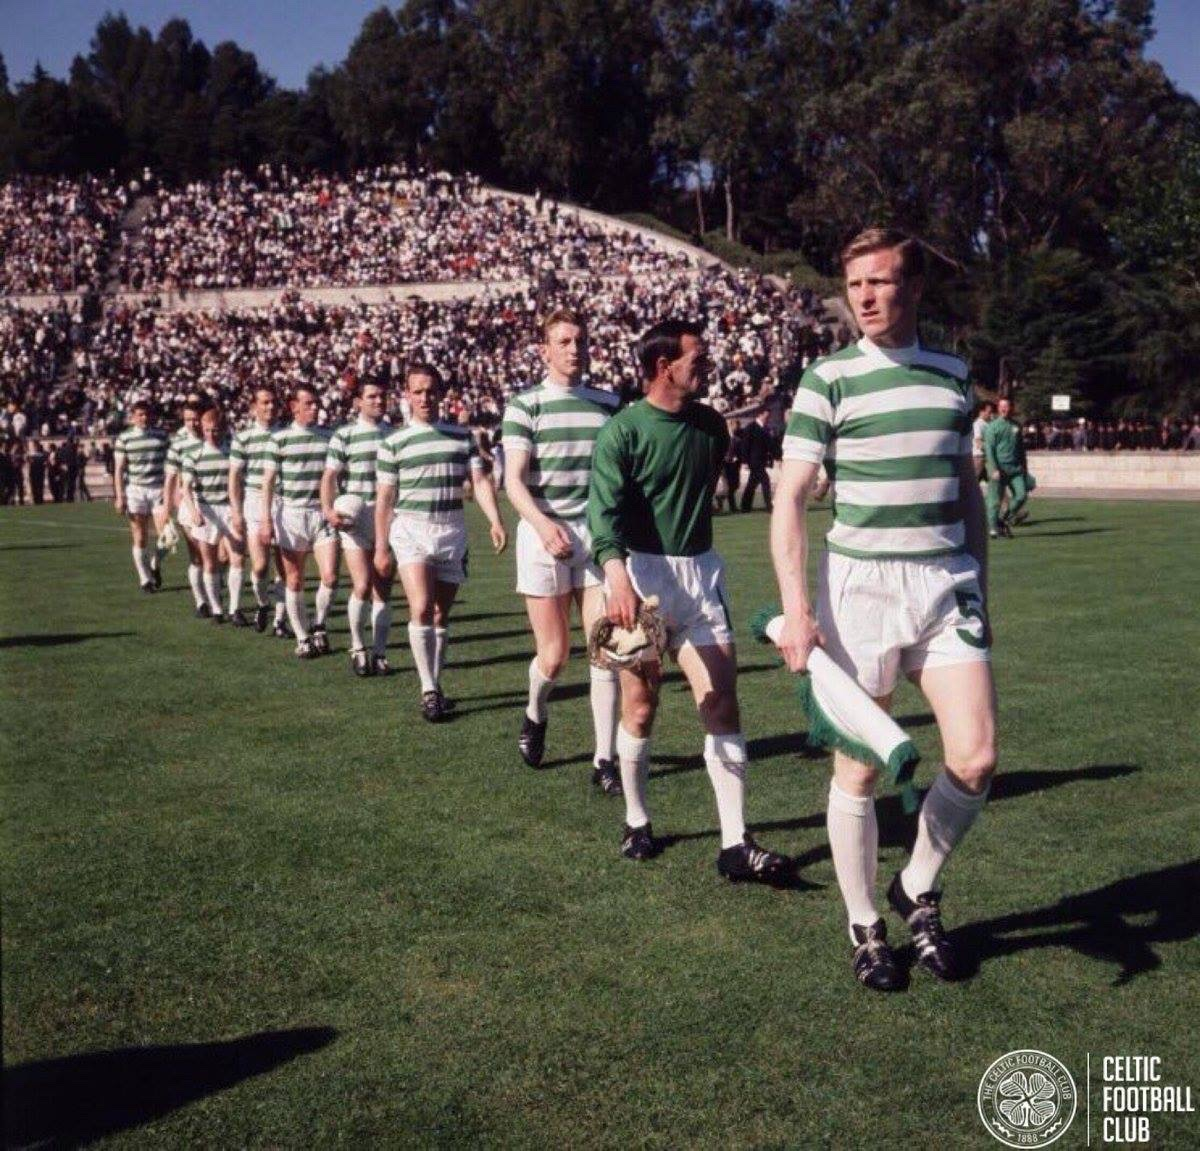 Celtic Football Club (from 🏡)